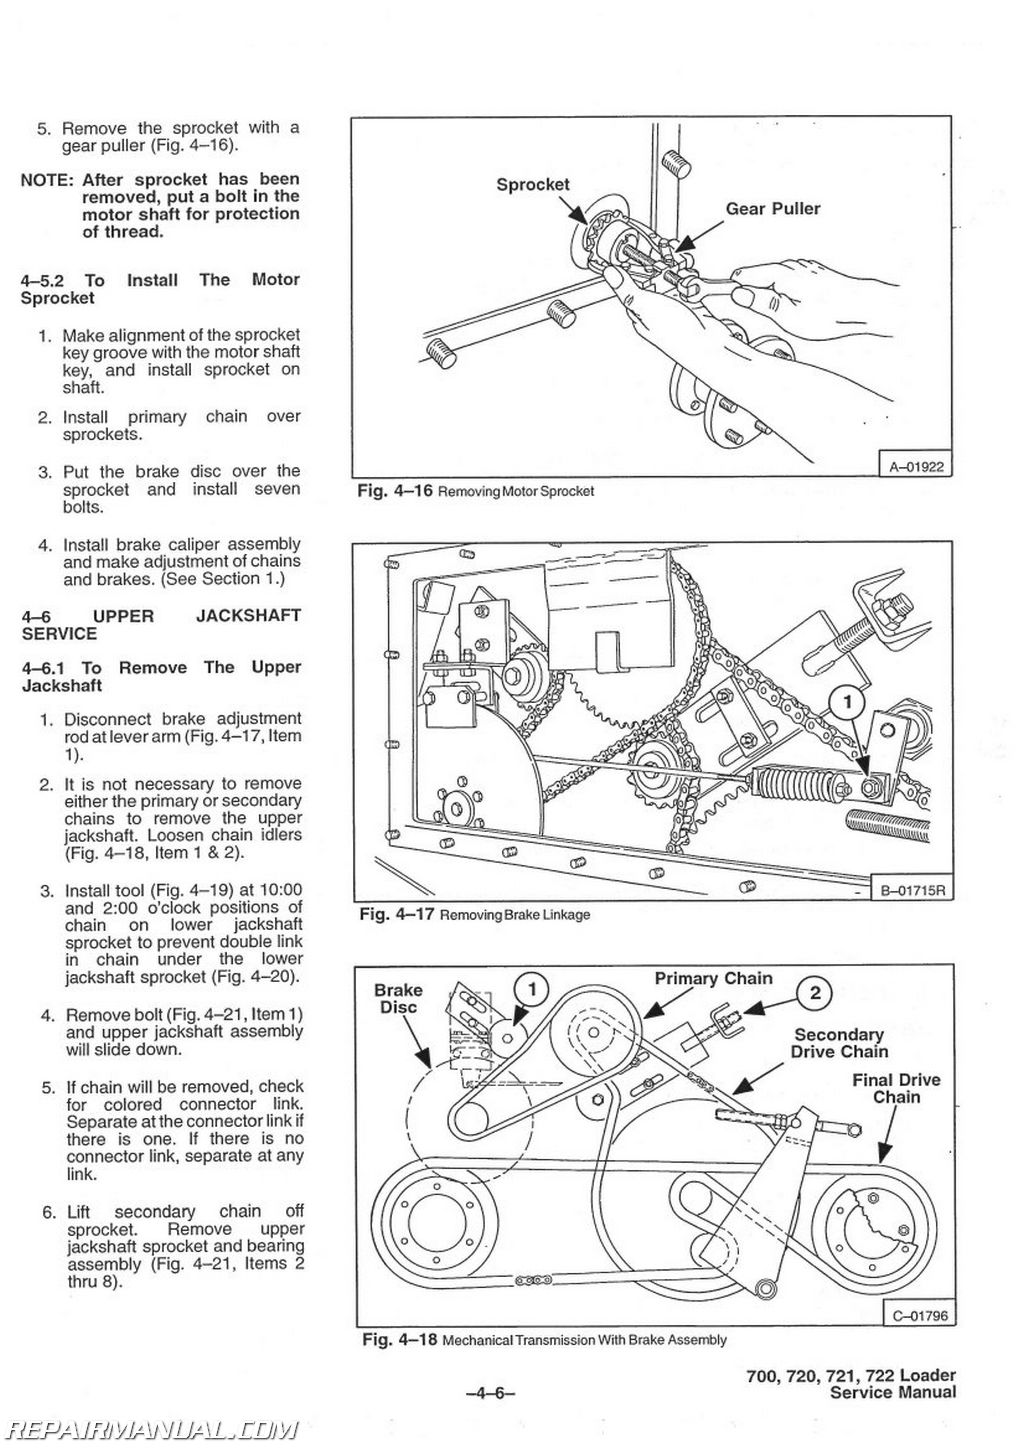 bobcat 843 parts diagram msd 6a wiring chevy hei 700 720 721 722 skid steer service manual